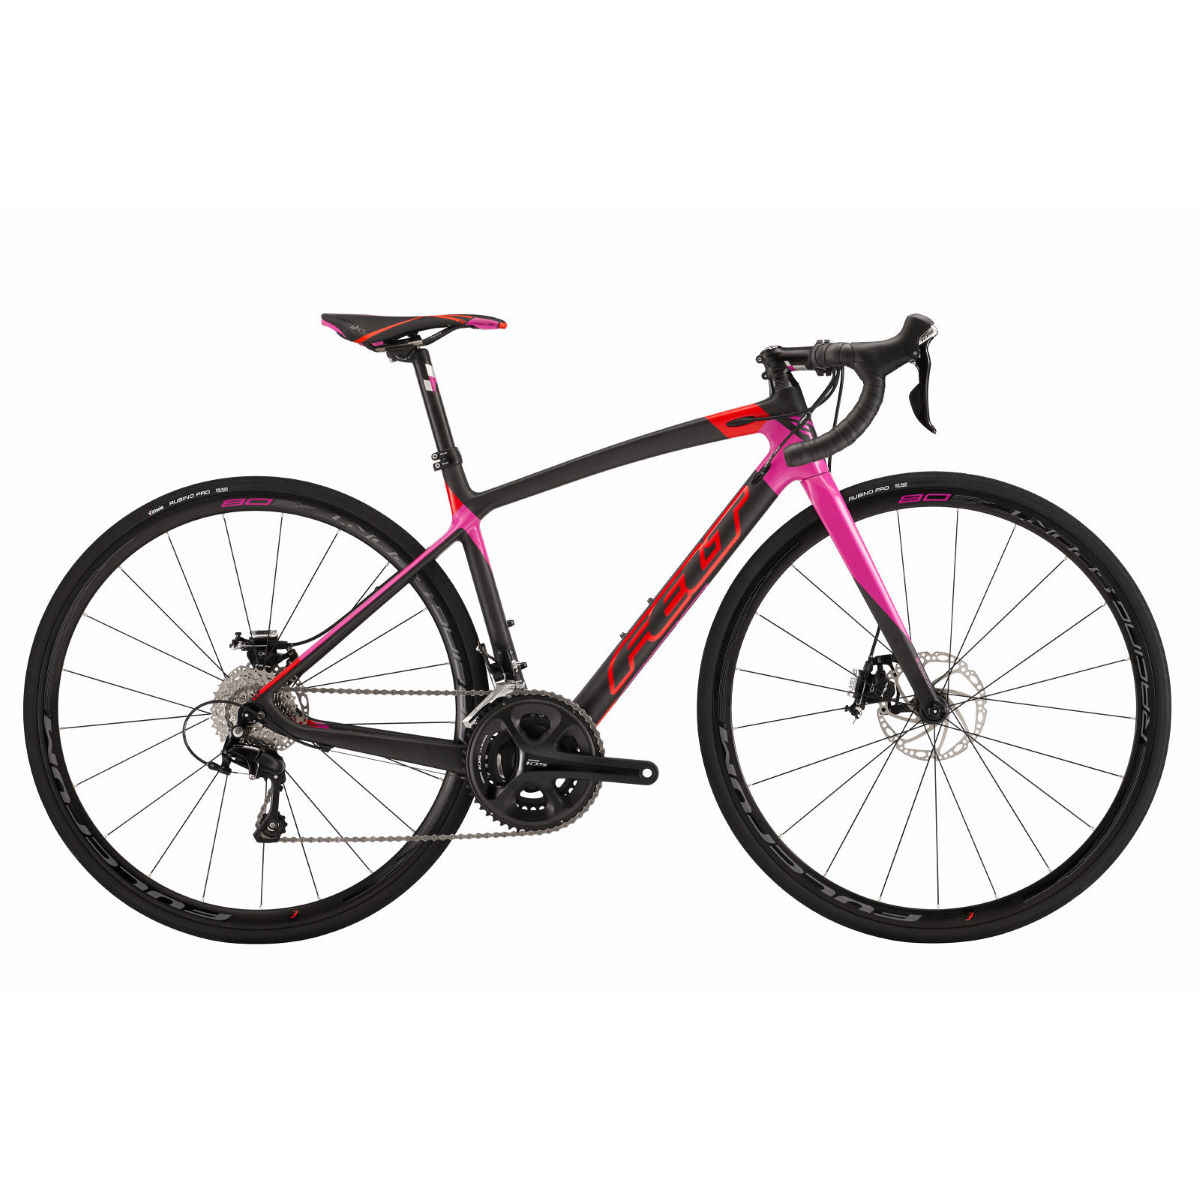 Vélo de route Felt ZW4 (disque, 2016) - 50cm Carbon/Red/Purple Vélos de route